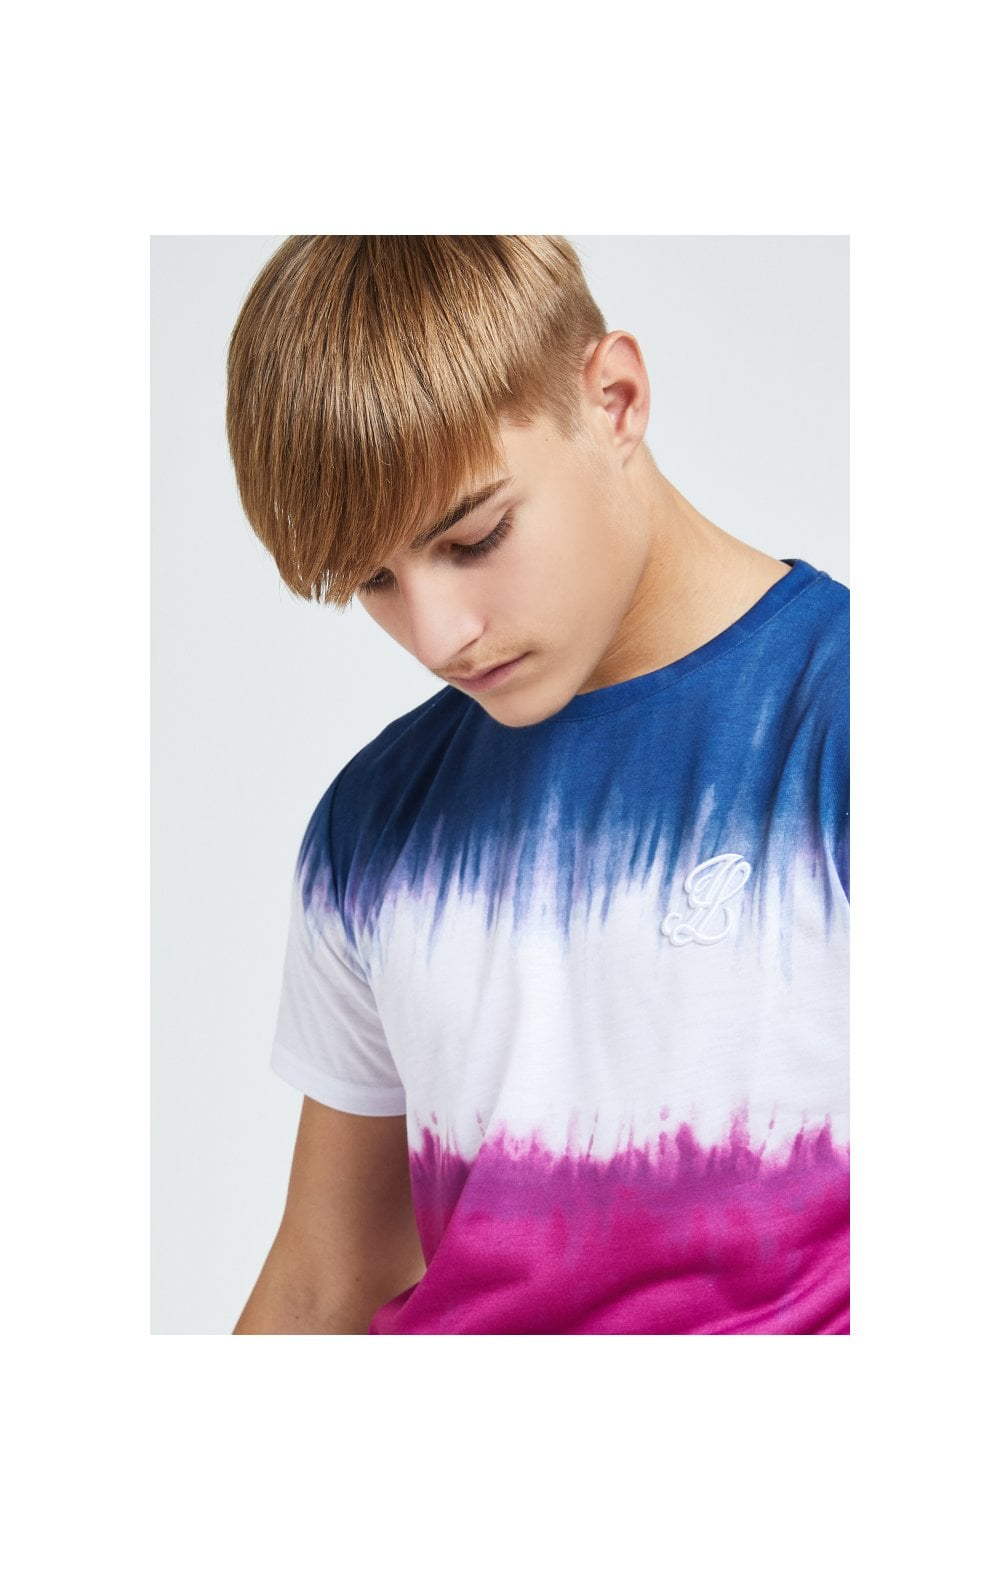 Load image into Gallery viewer, Illusive London Tie Fade Print Tee – Indigo, White & Pink (1)